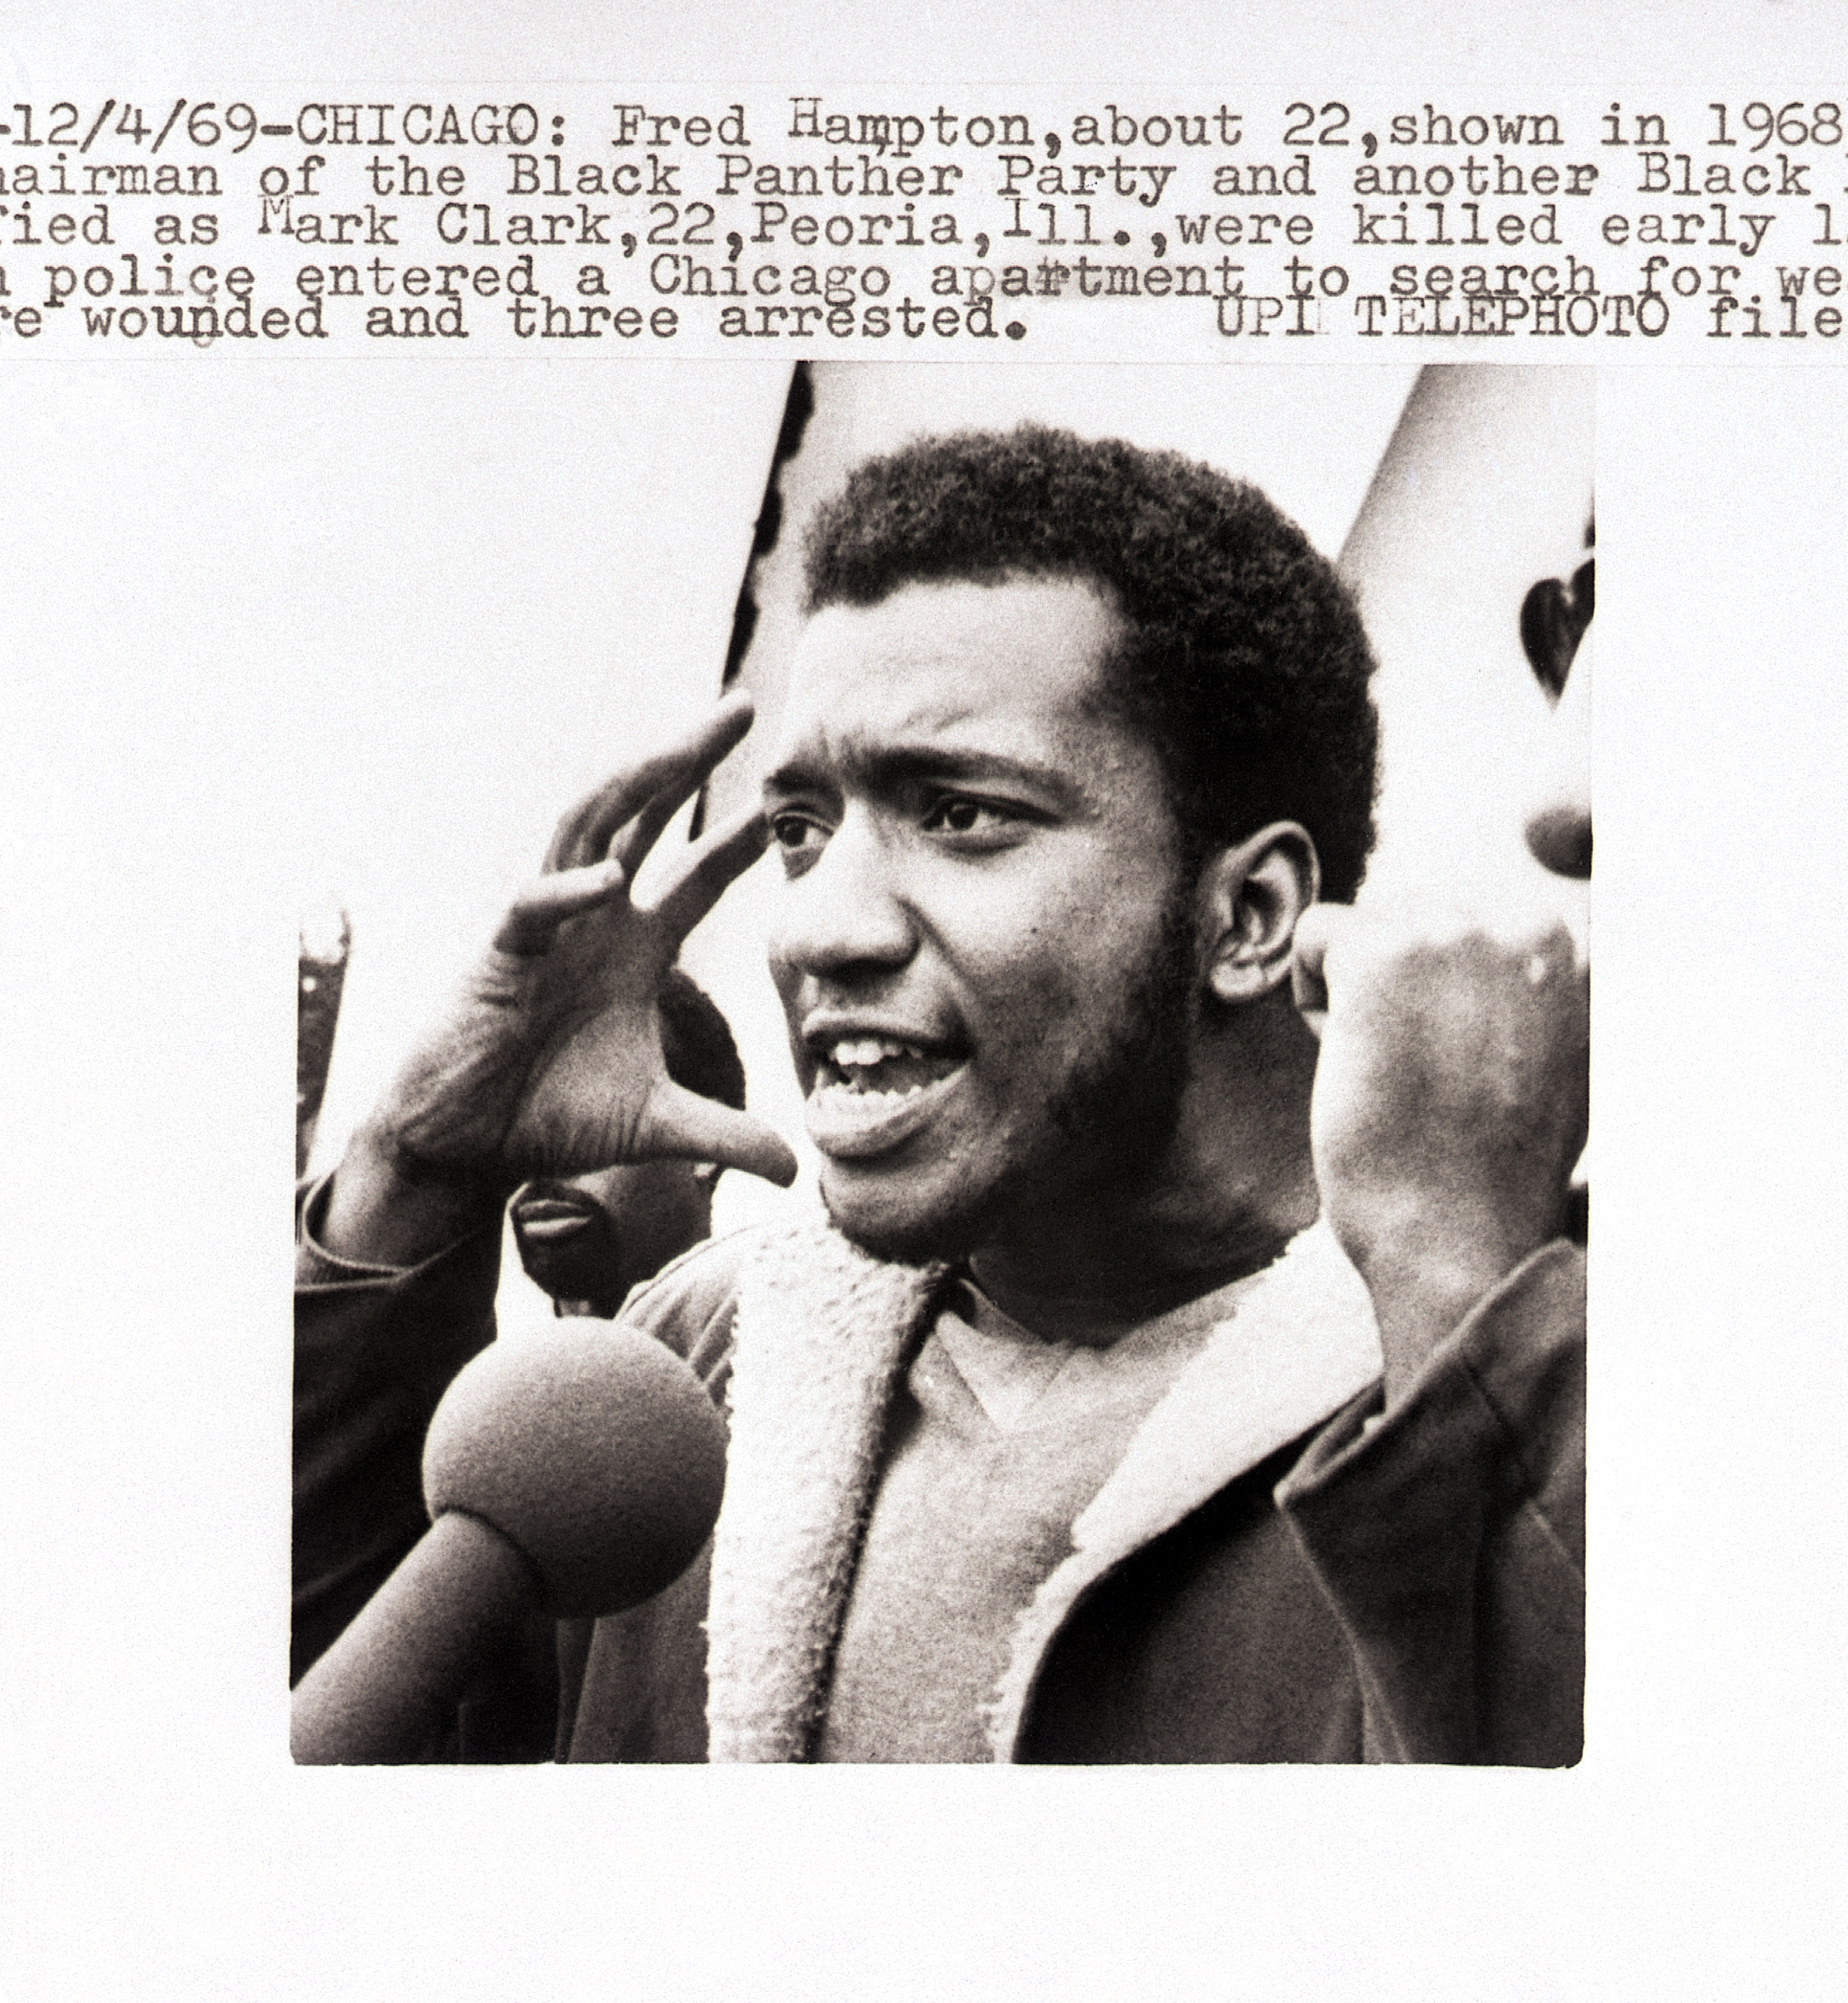 Fred Hampton en 1968 en el estado de Illinois ya como presidente de los Black Panther